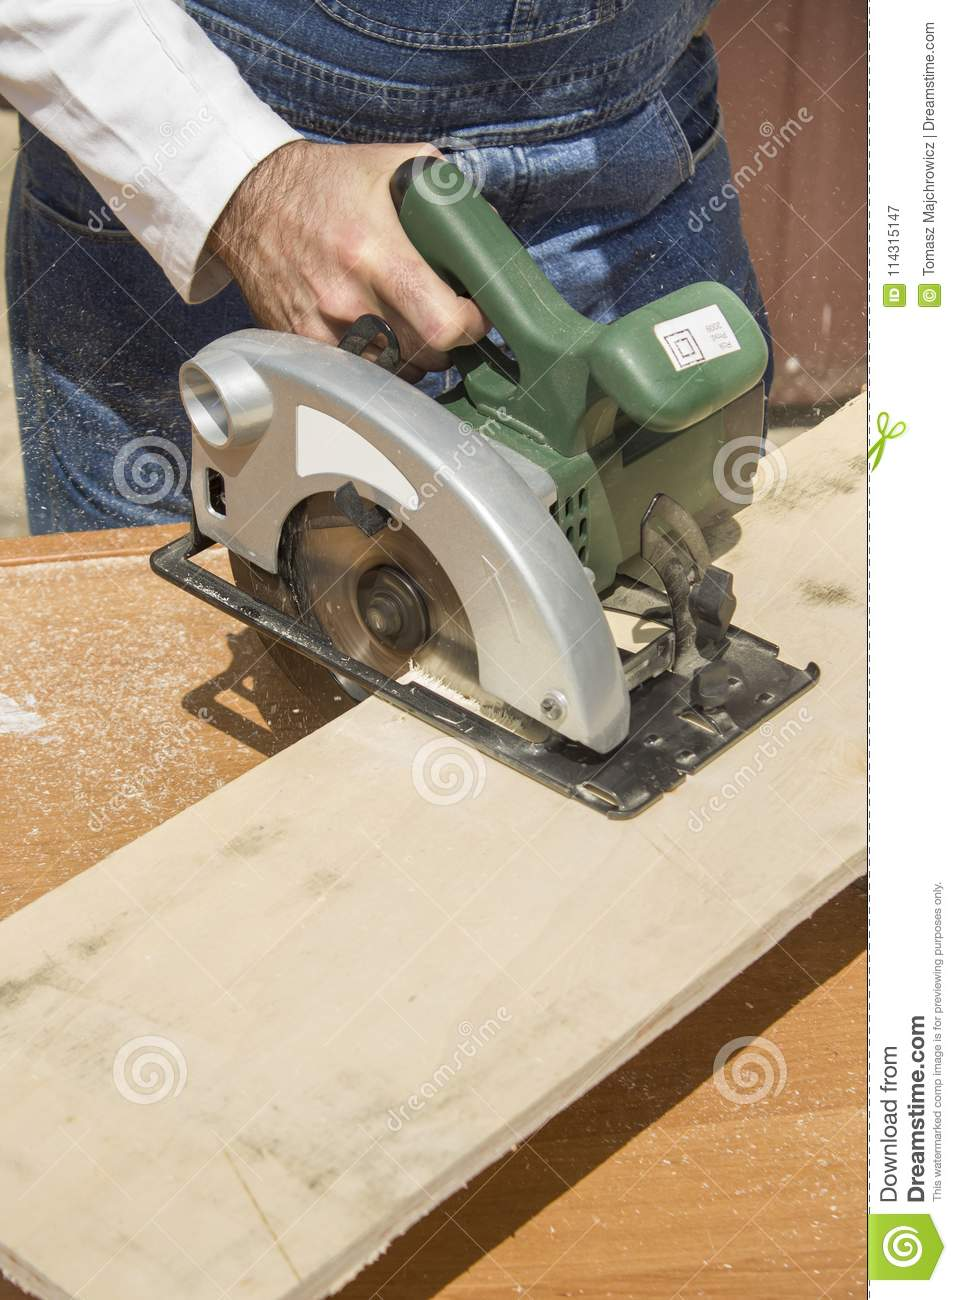 Construction worker crosses a board with a circular saw. The carpenter cuts  the board with a manual electric saw.